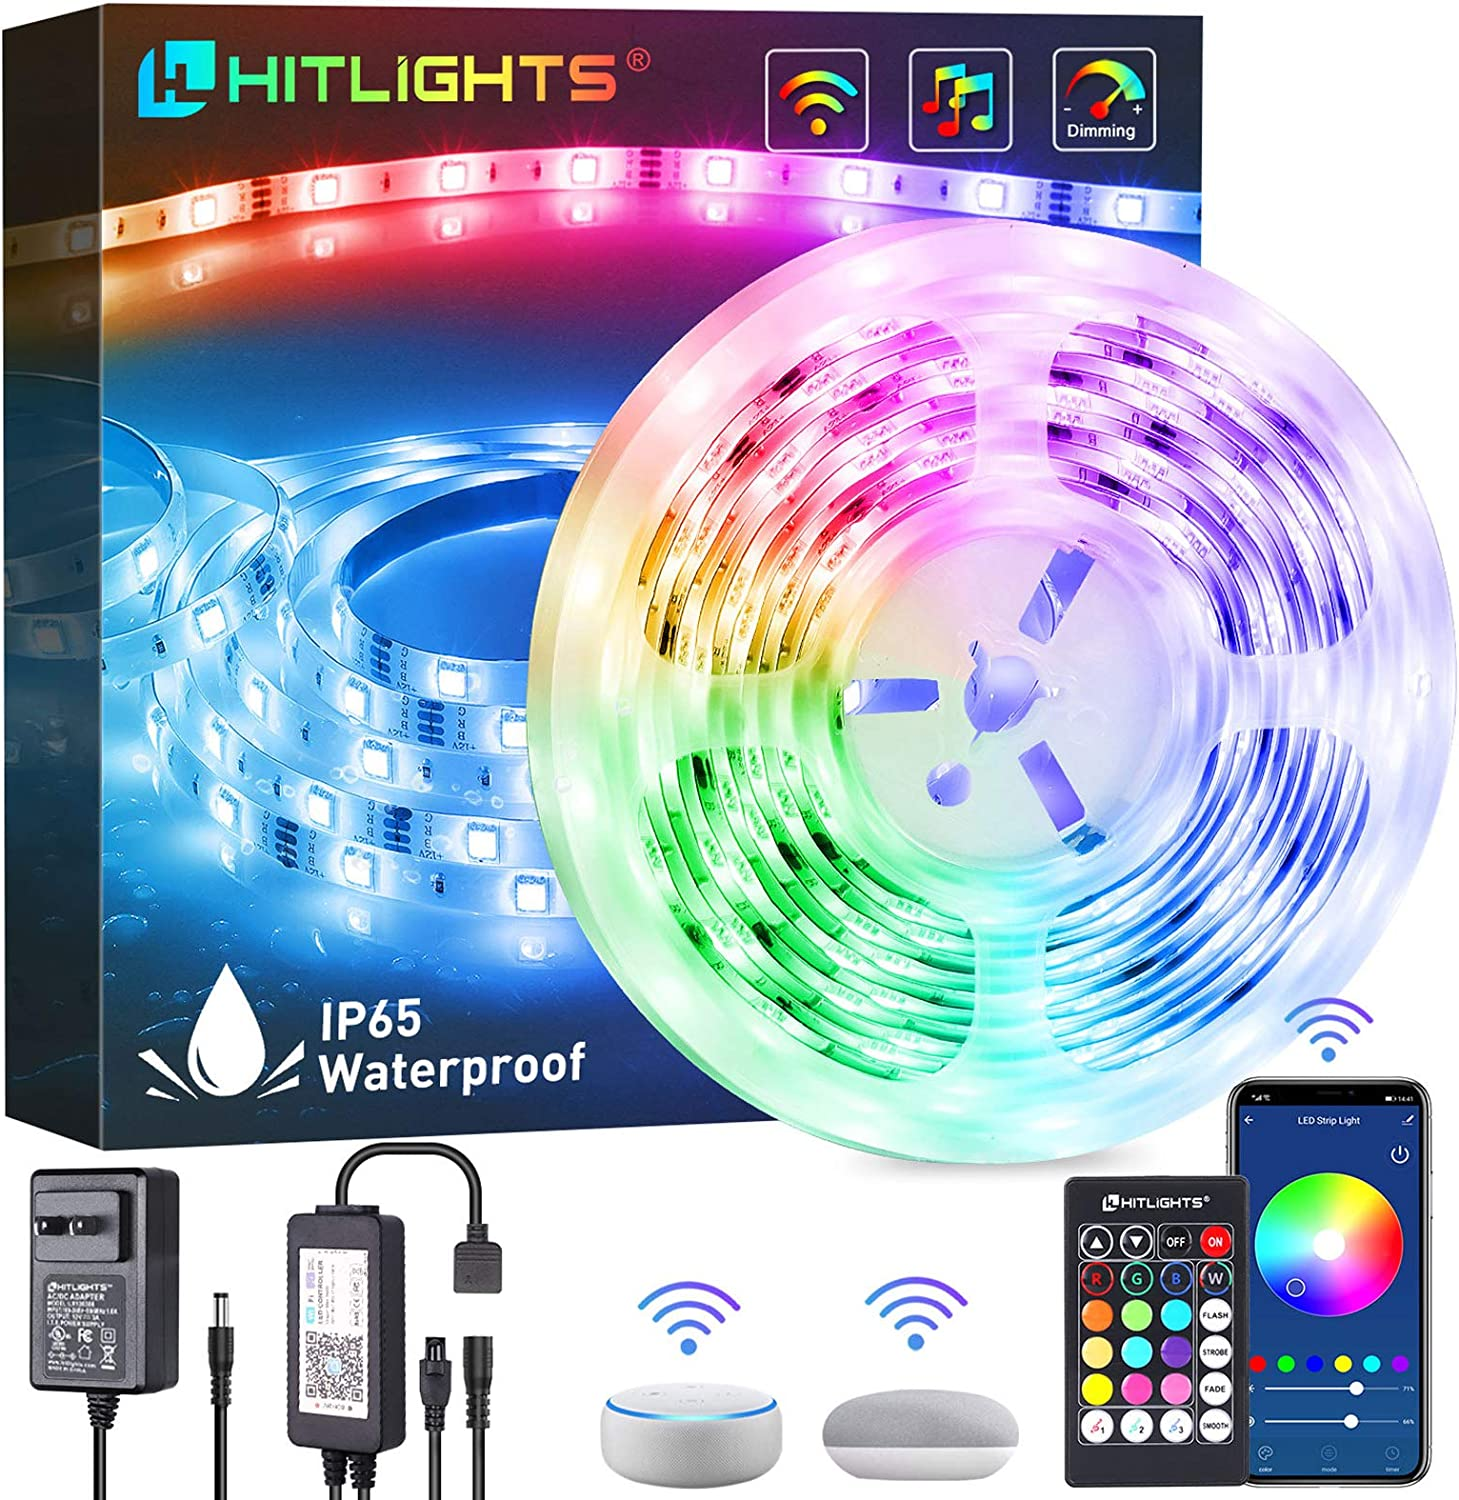 LED Strip Lights HitLights Japan's largest assortment 16.4ft APP Smart Control St WiFi 2021 autumn and winter new